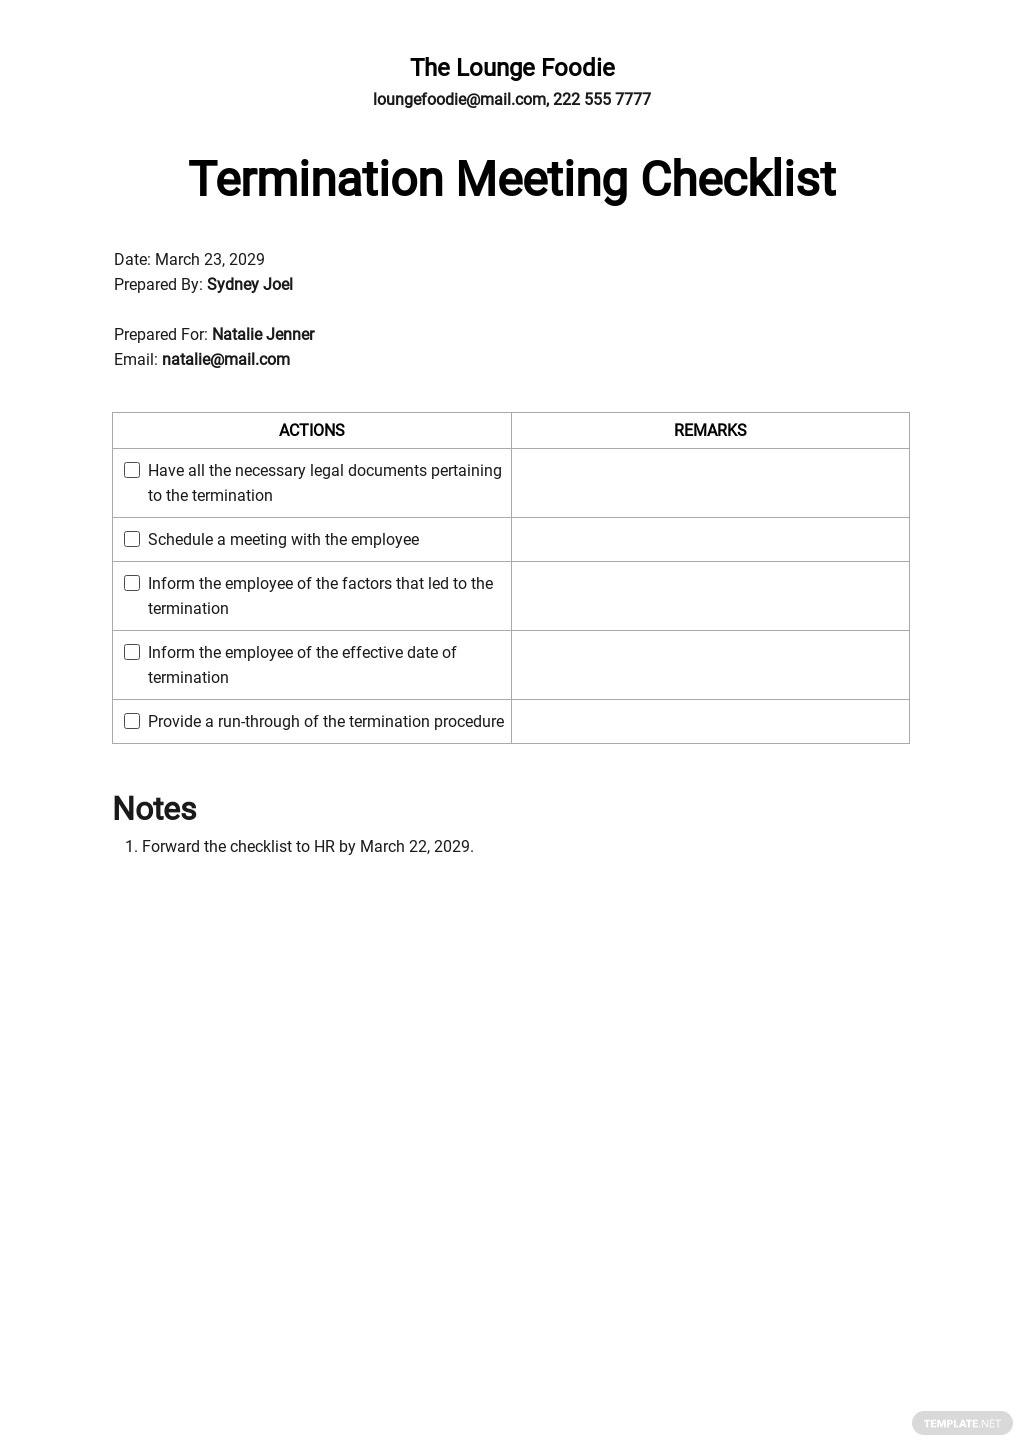 Restaurant Employee Termination Meeting Checklist Template.jpe